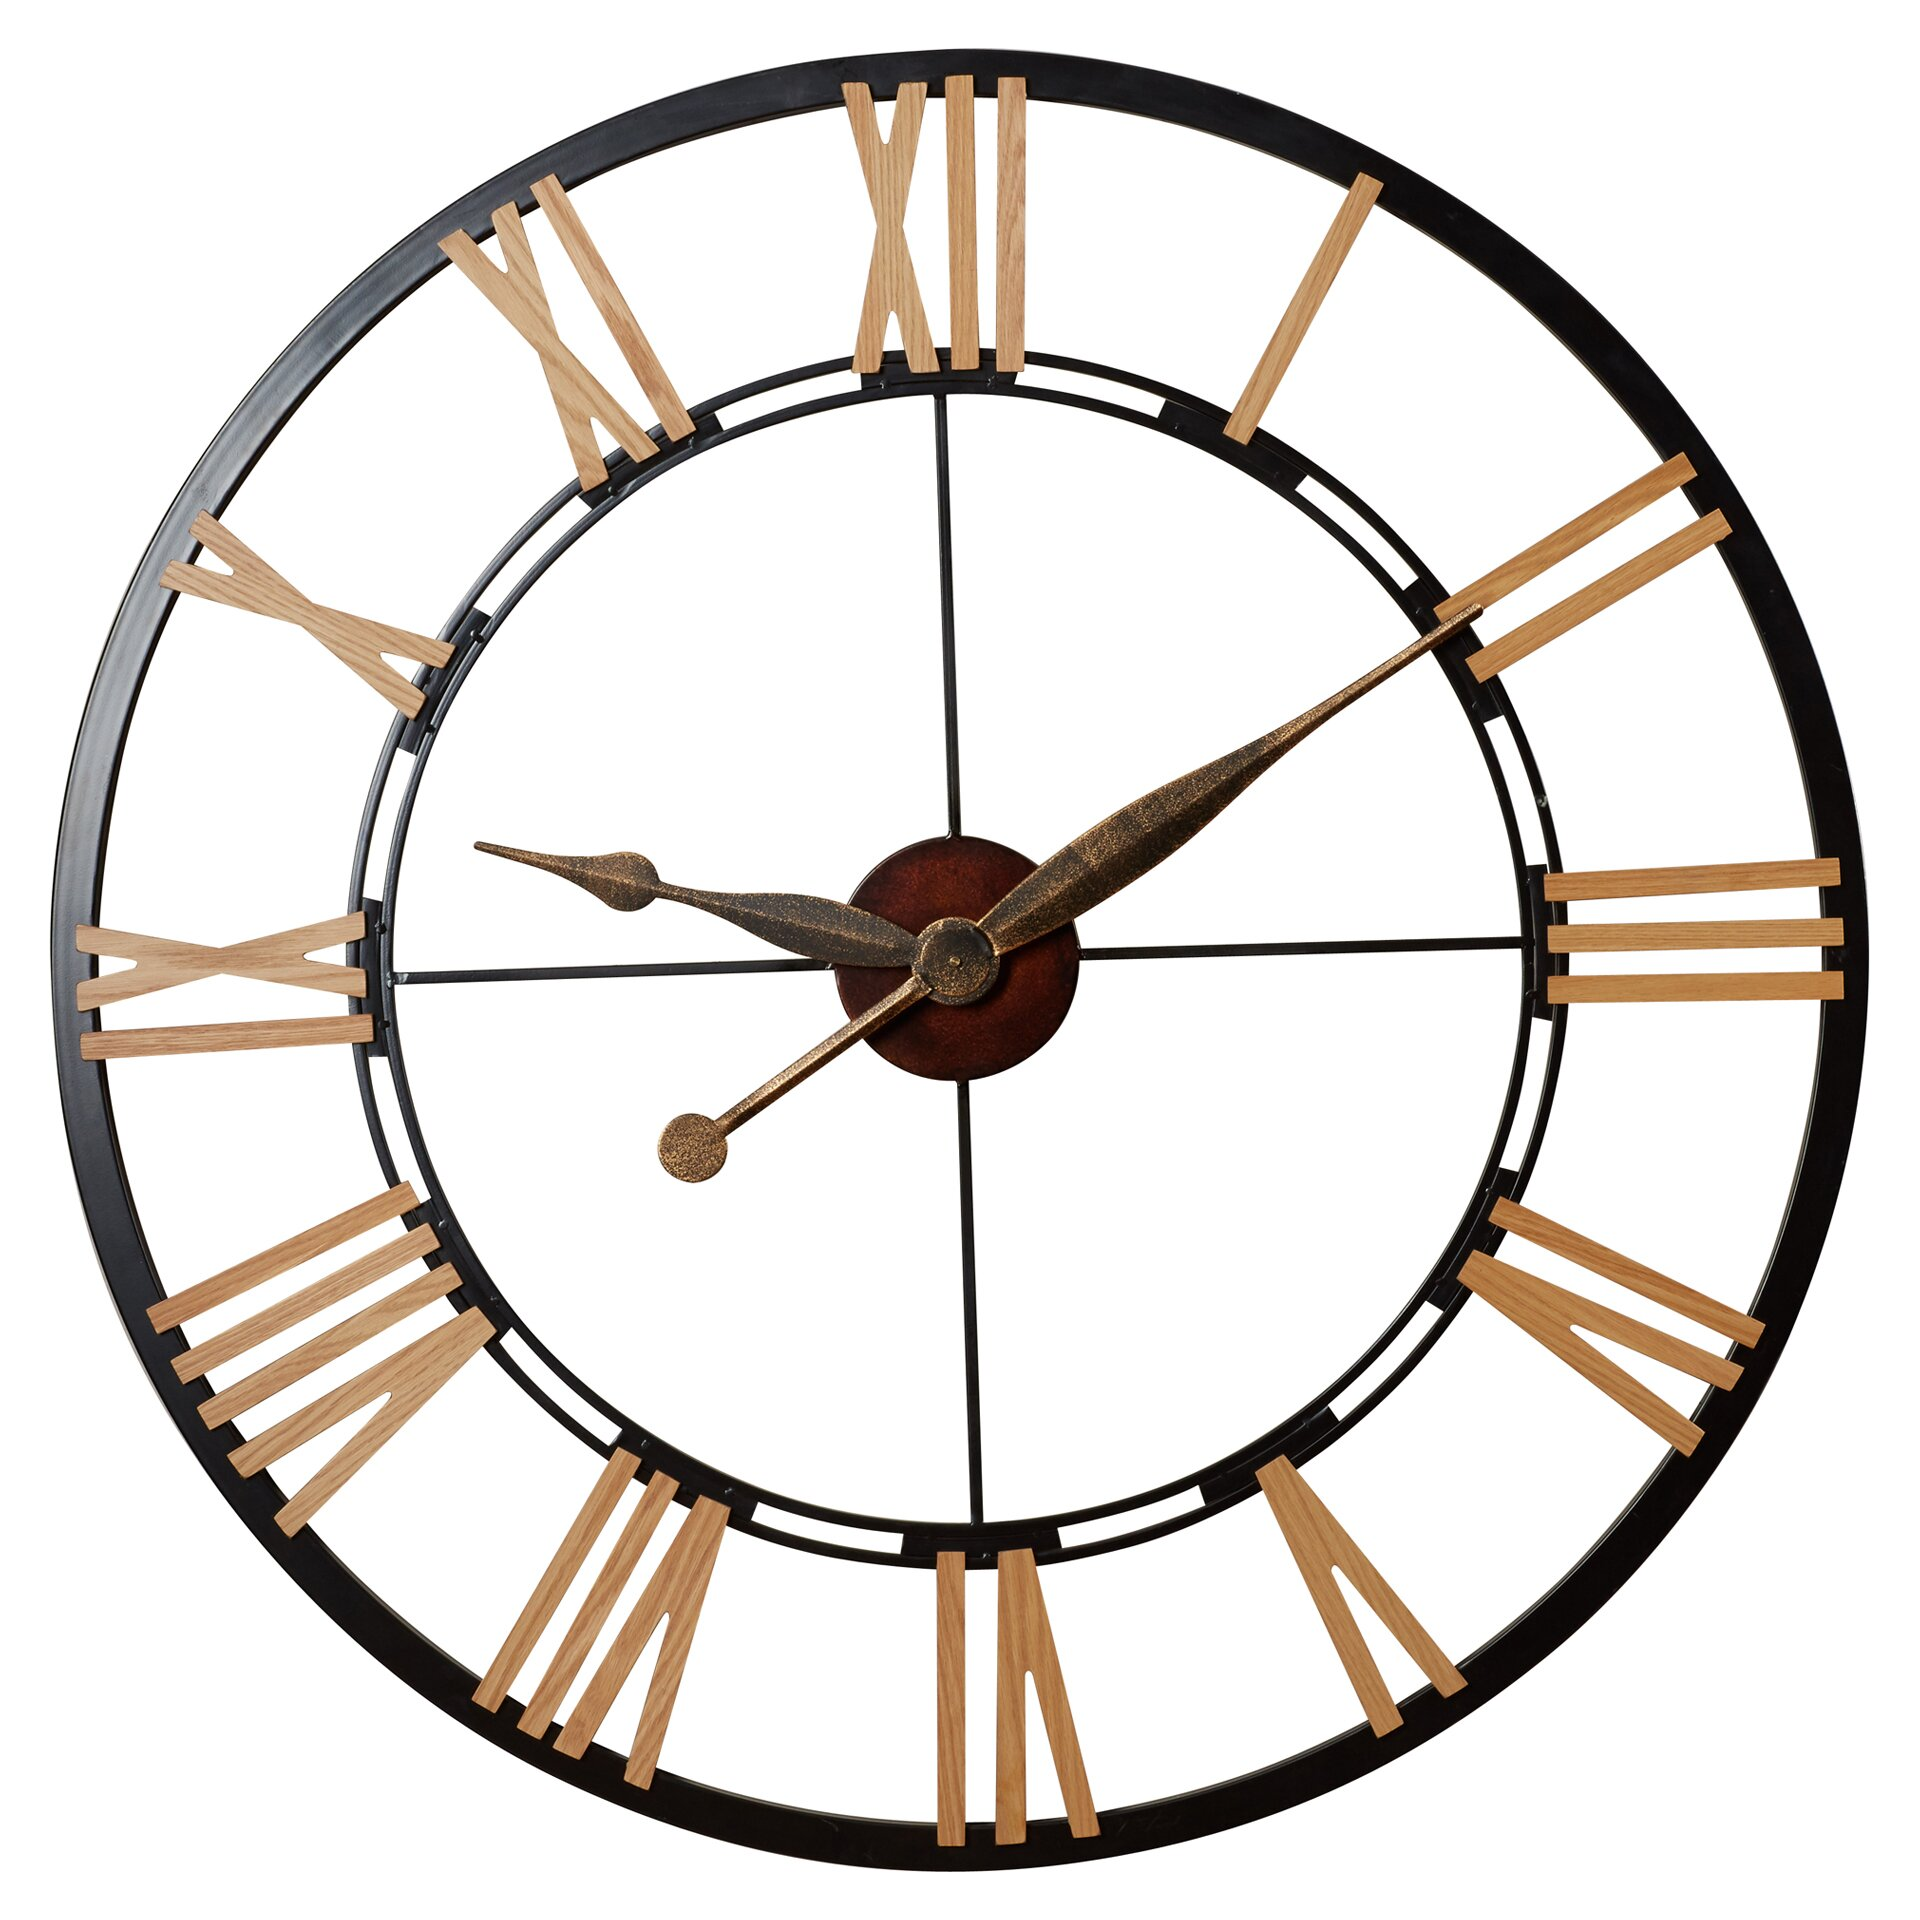 43299 likewise 2 moreover Oversized 45 Cologne Wall Clock RSWH1051 RSWH1051 in addition Sherwin Williams Gray Paint Colors Sherwin Williams Mindful Grey Life In Yellow also Diy Patio Ideas On A Budget. on patio furniture trends 2016